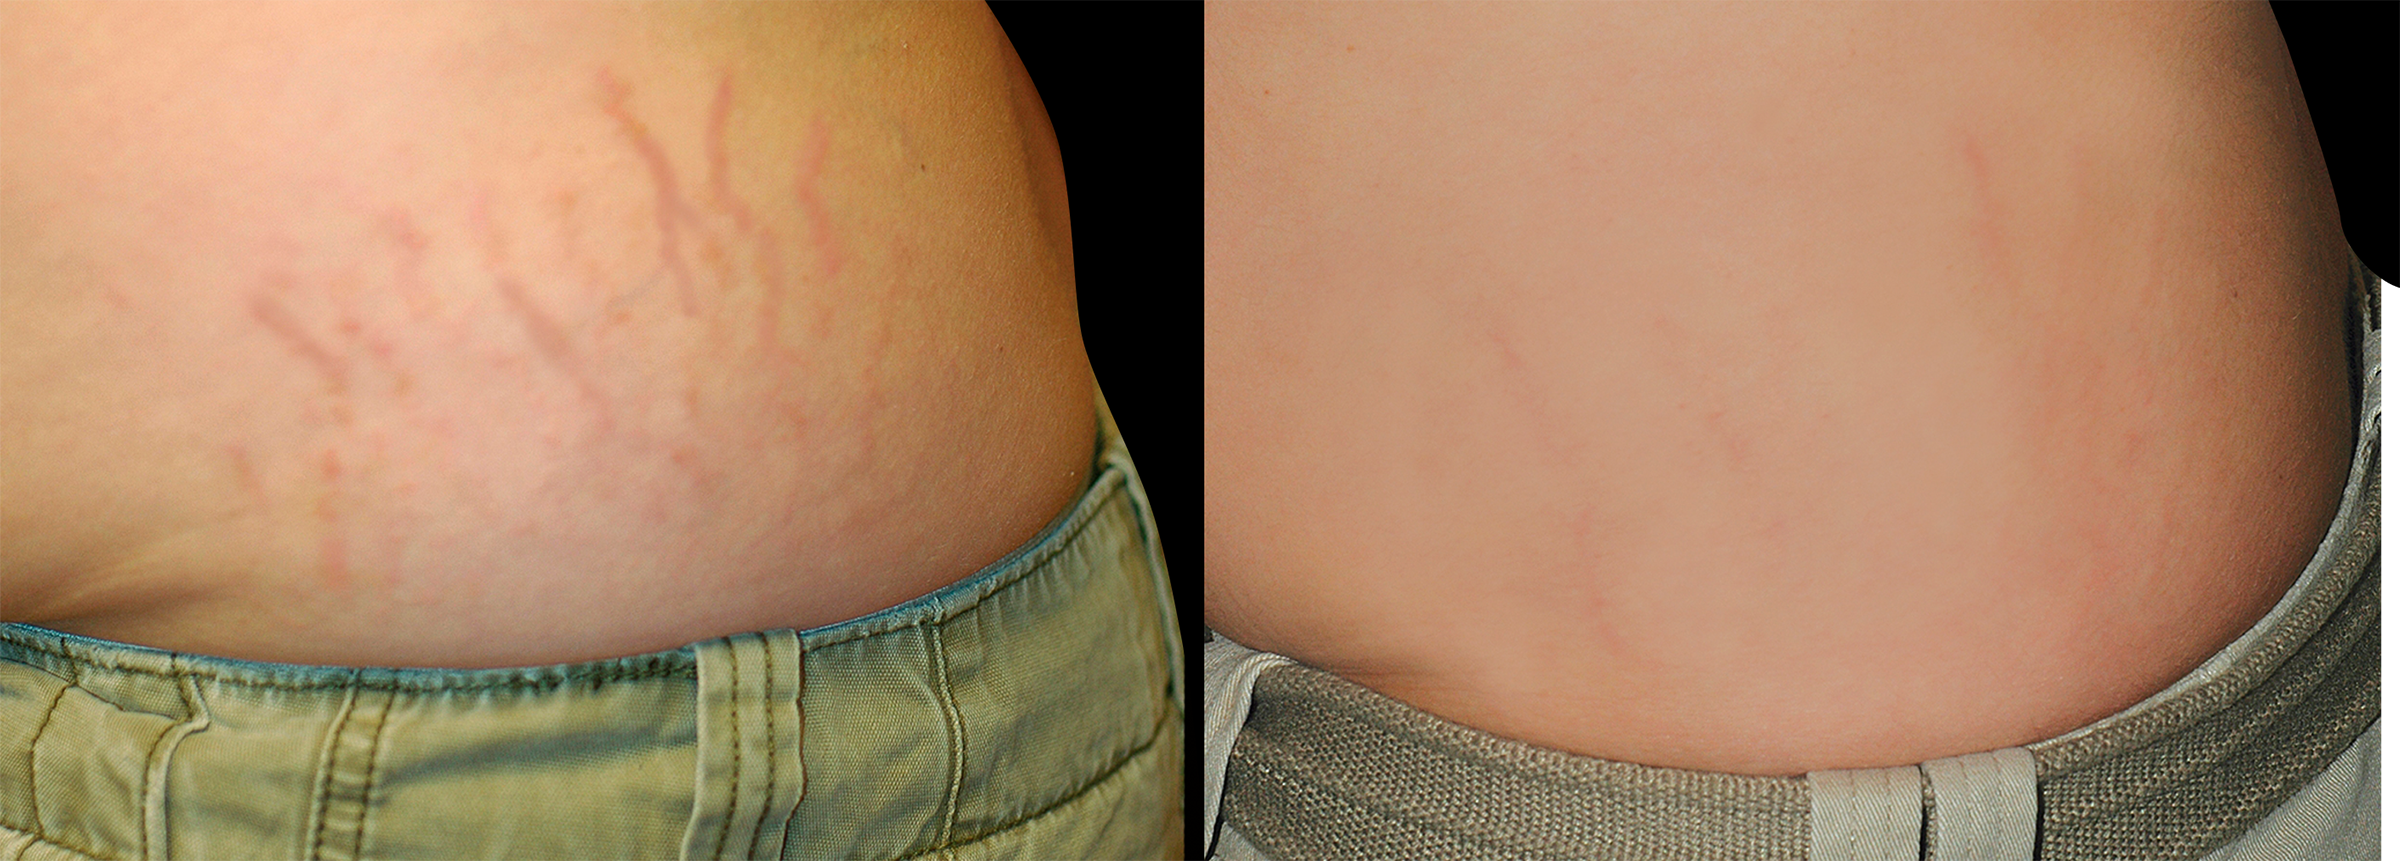 Long Island stretch mark removal before and after